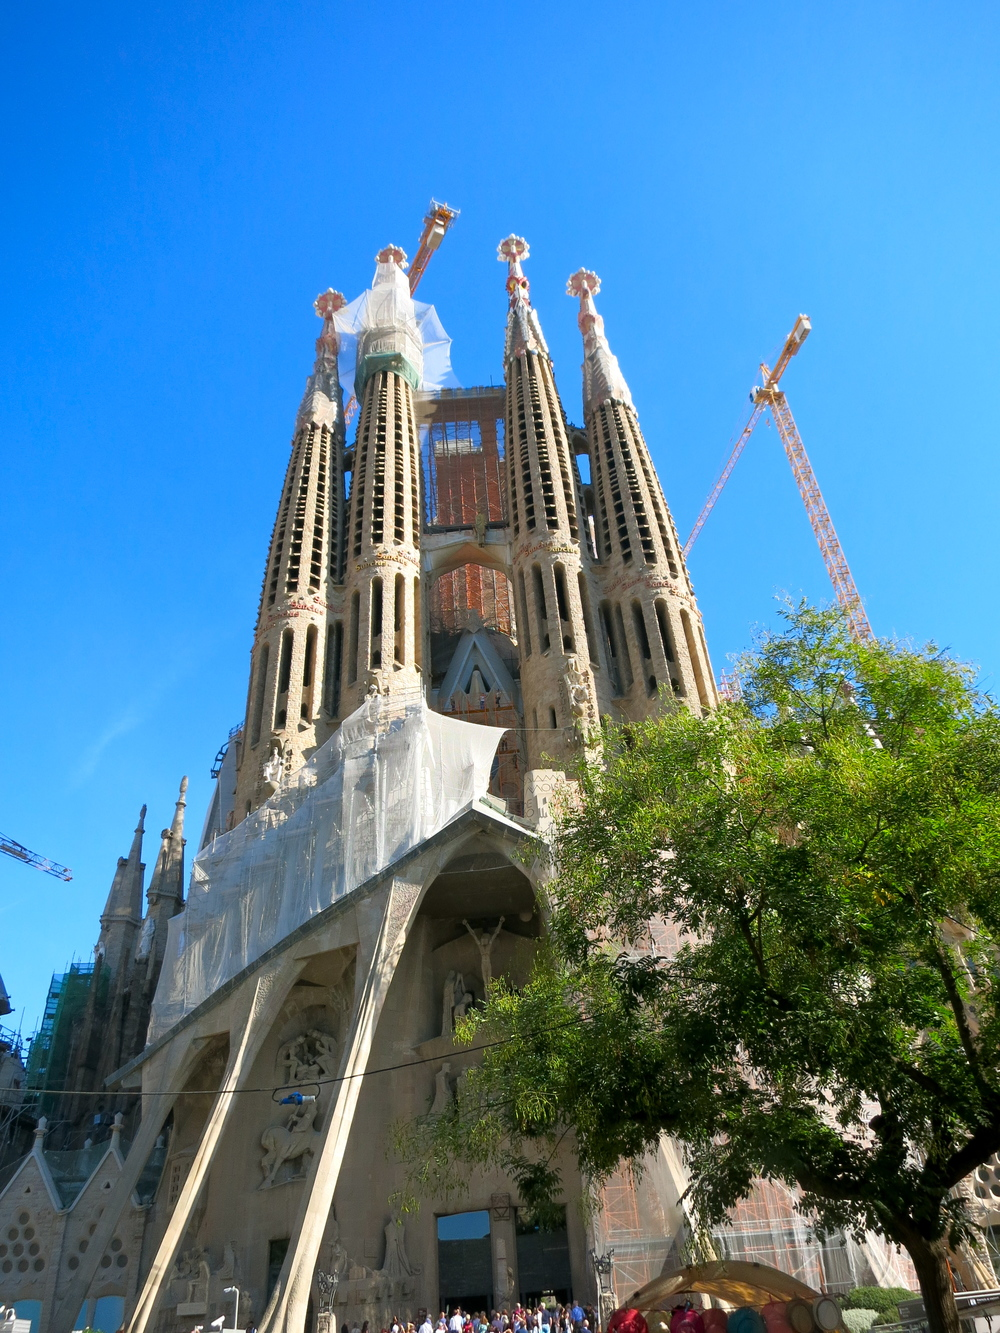 When Gaudi died in 1926 only one tower was complete. Today there are eight towers, four at each entrance to La Sagrada Familia. © 2014 Gail Jessen